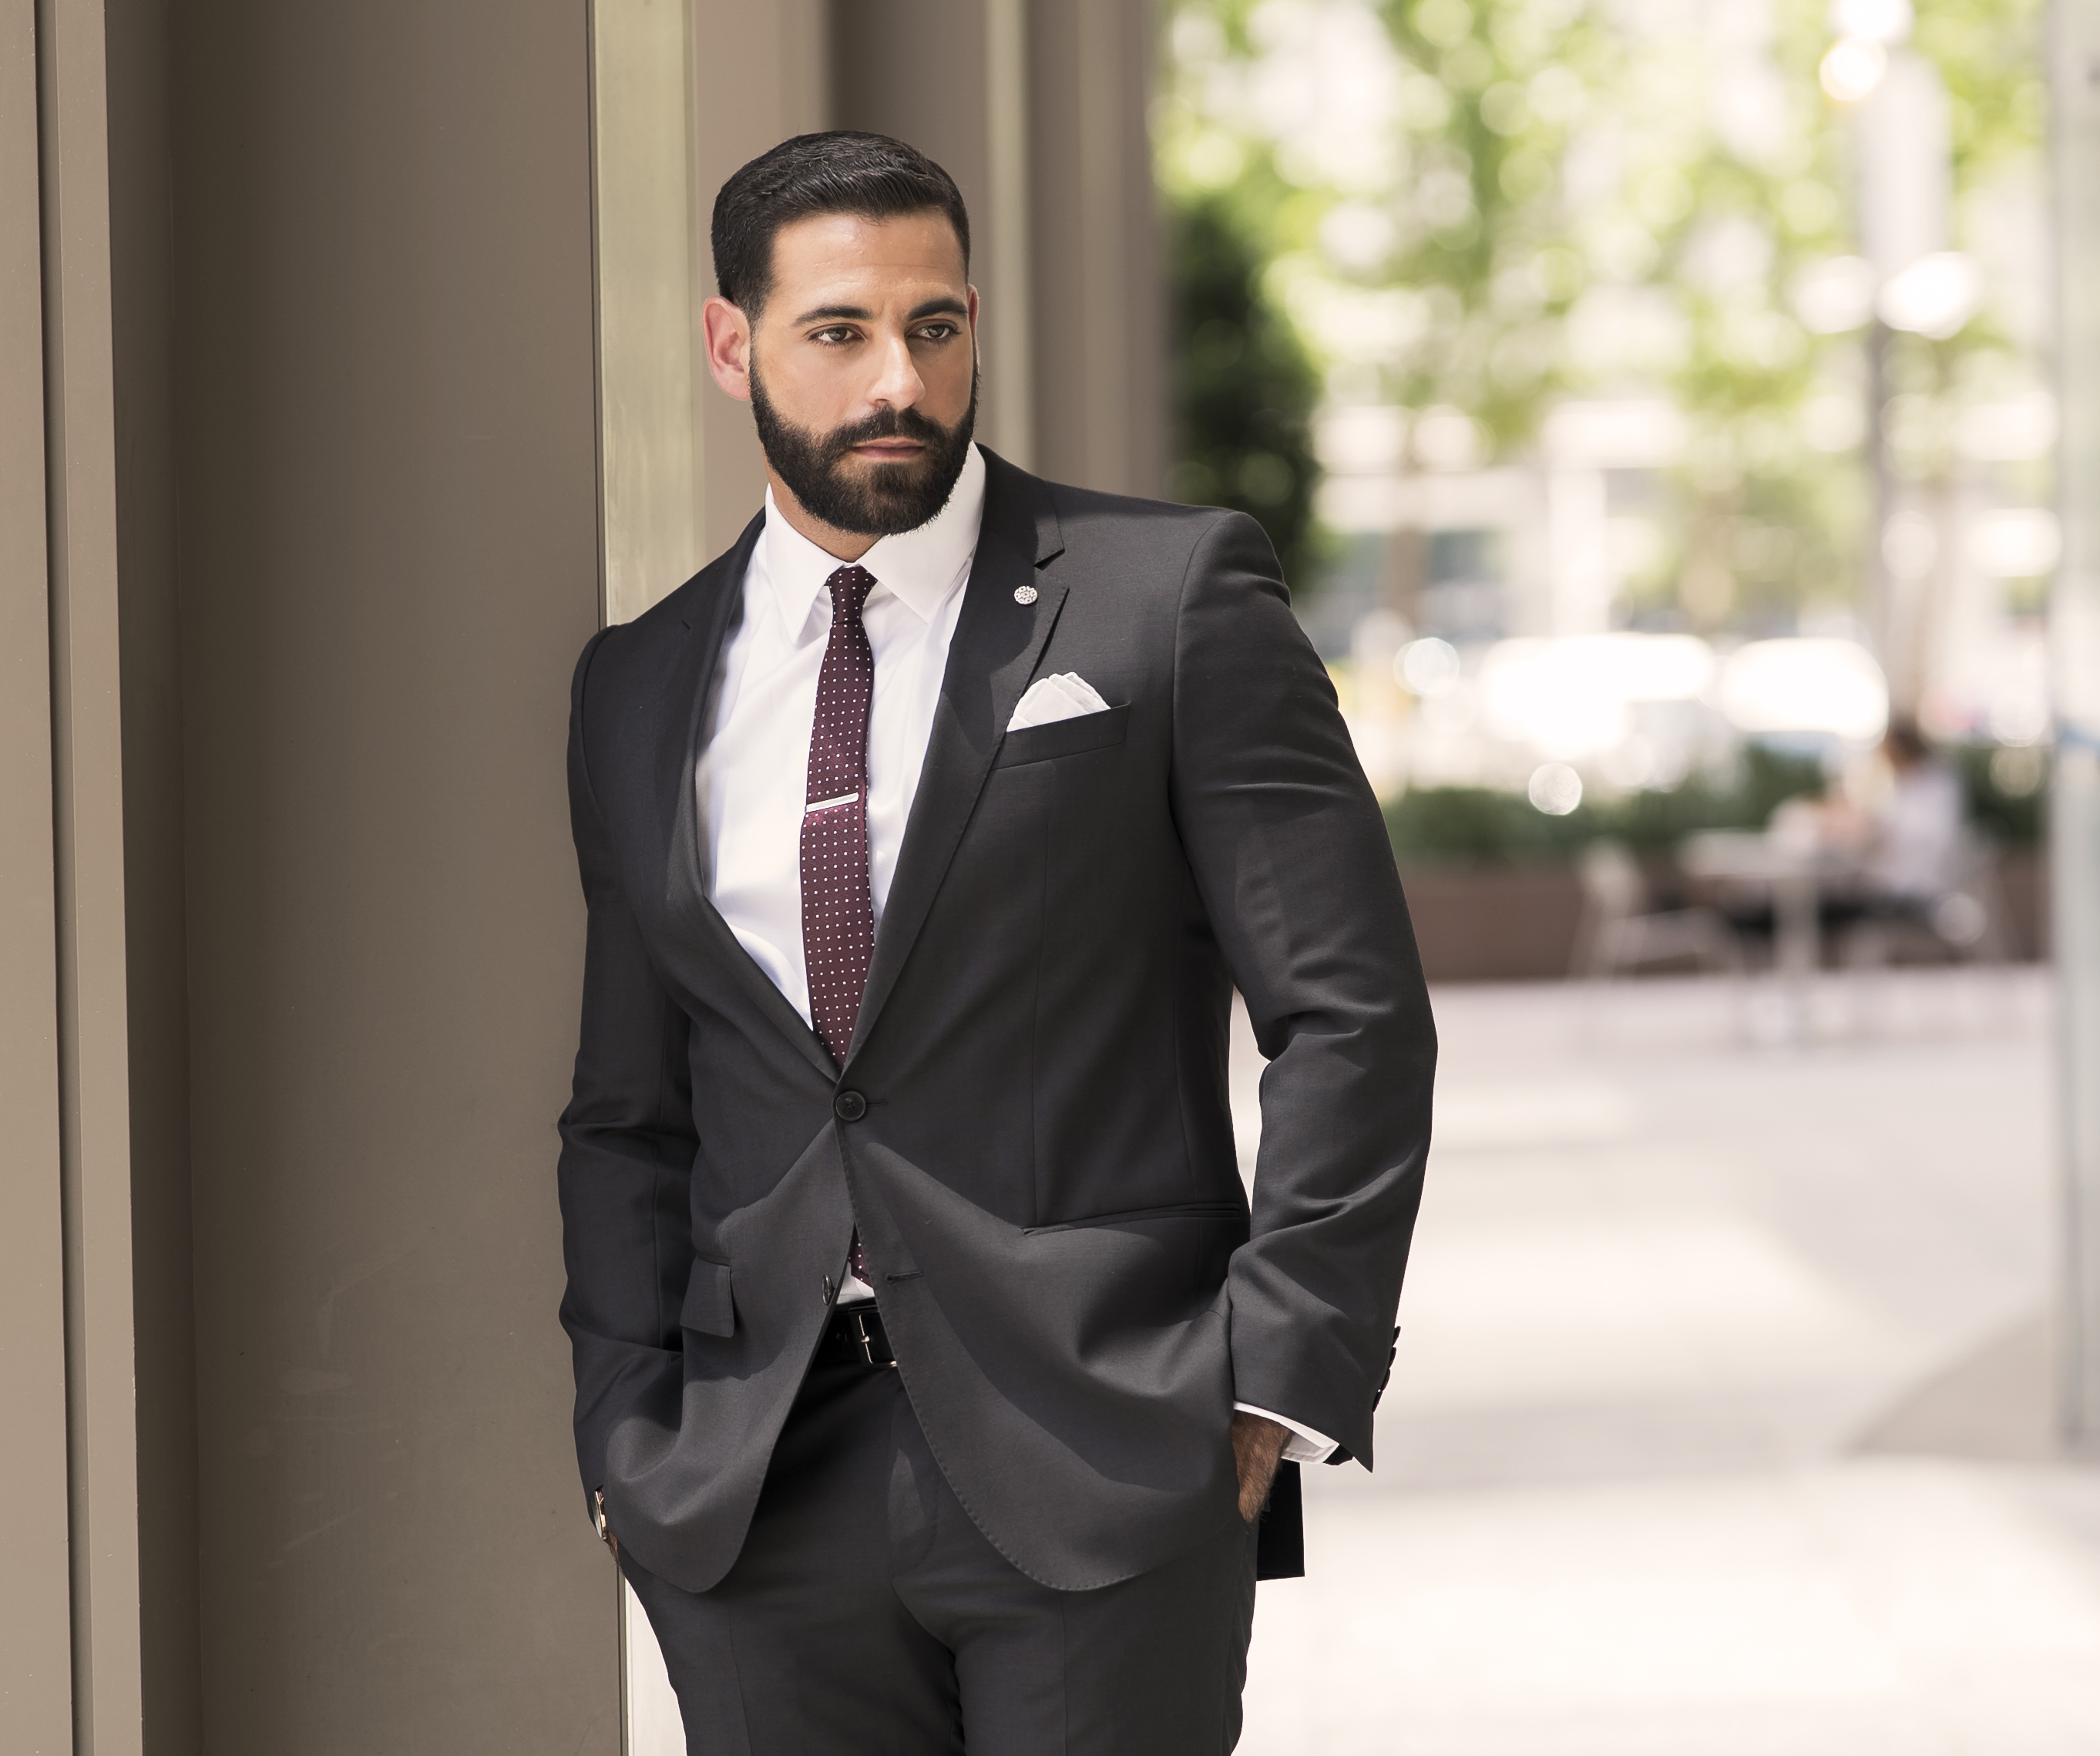 HOW-TO: Sophisticated Men's Style for the Busy Professional